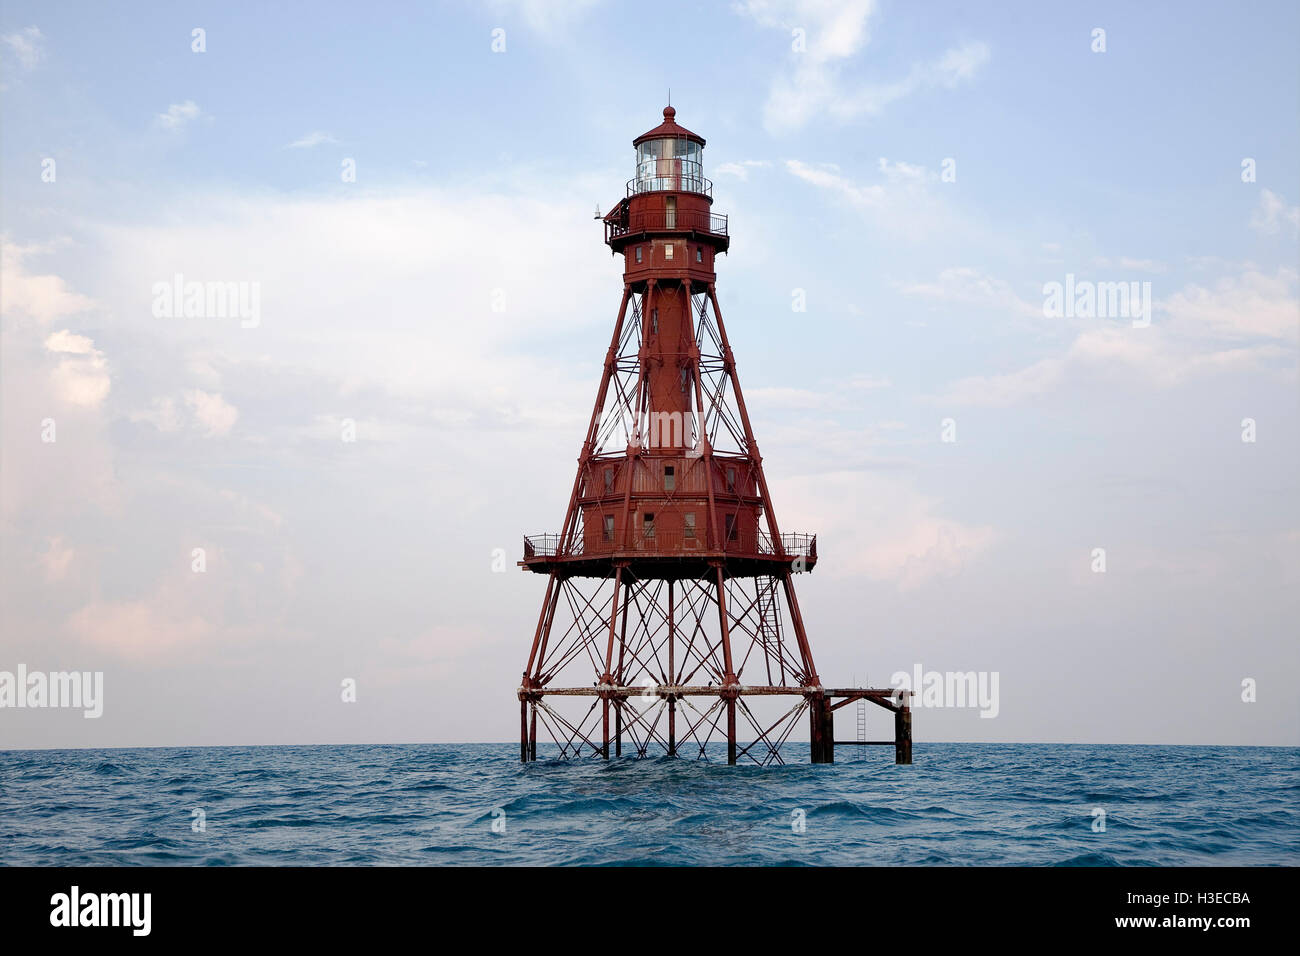 Florida's American Shoal Lighthouse with its iron screw-pile skeletal tower showing off its bright red color - Stock Image